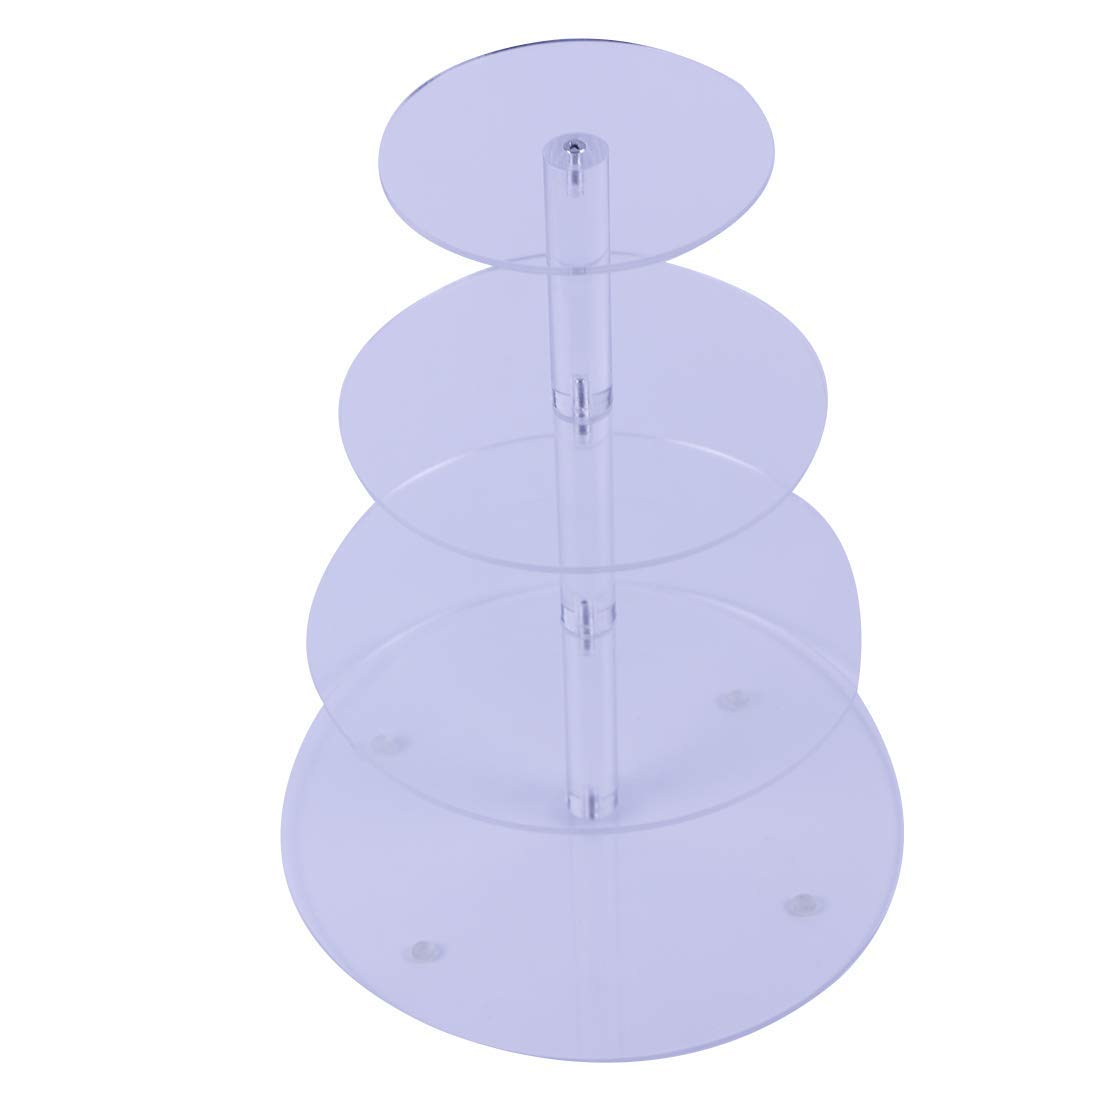 """VONTERP 4 Tier Acrylic Cupcake Stand Clear Acrylic Cupcake Stand Wedding Birthday Display Stand ((4 Tier Round (4.7"""" Layer spacing)"""